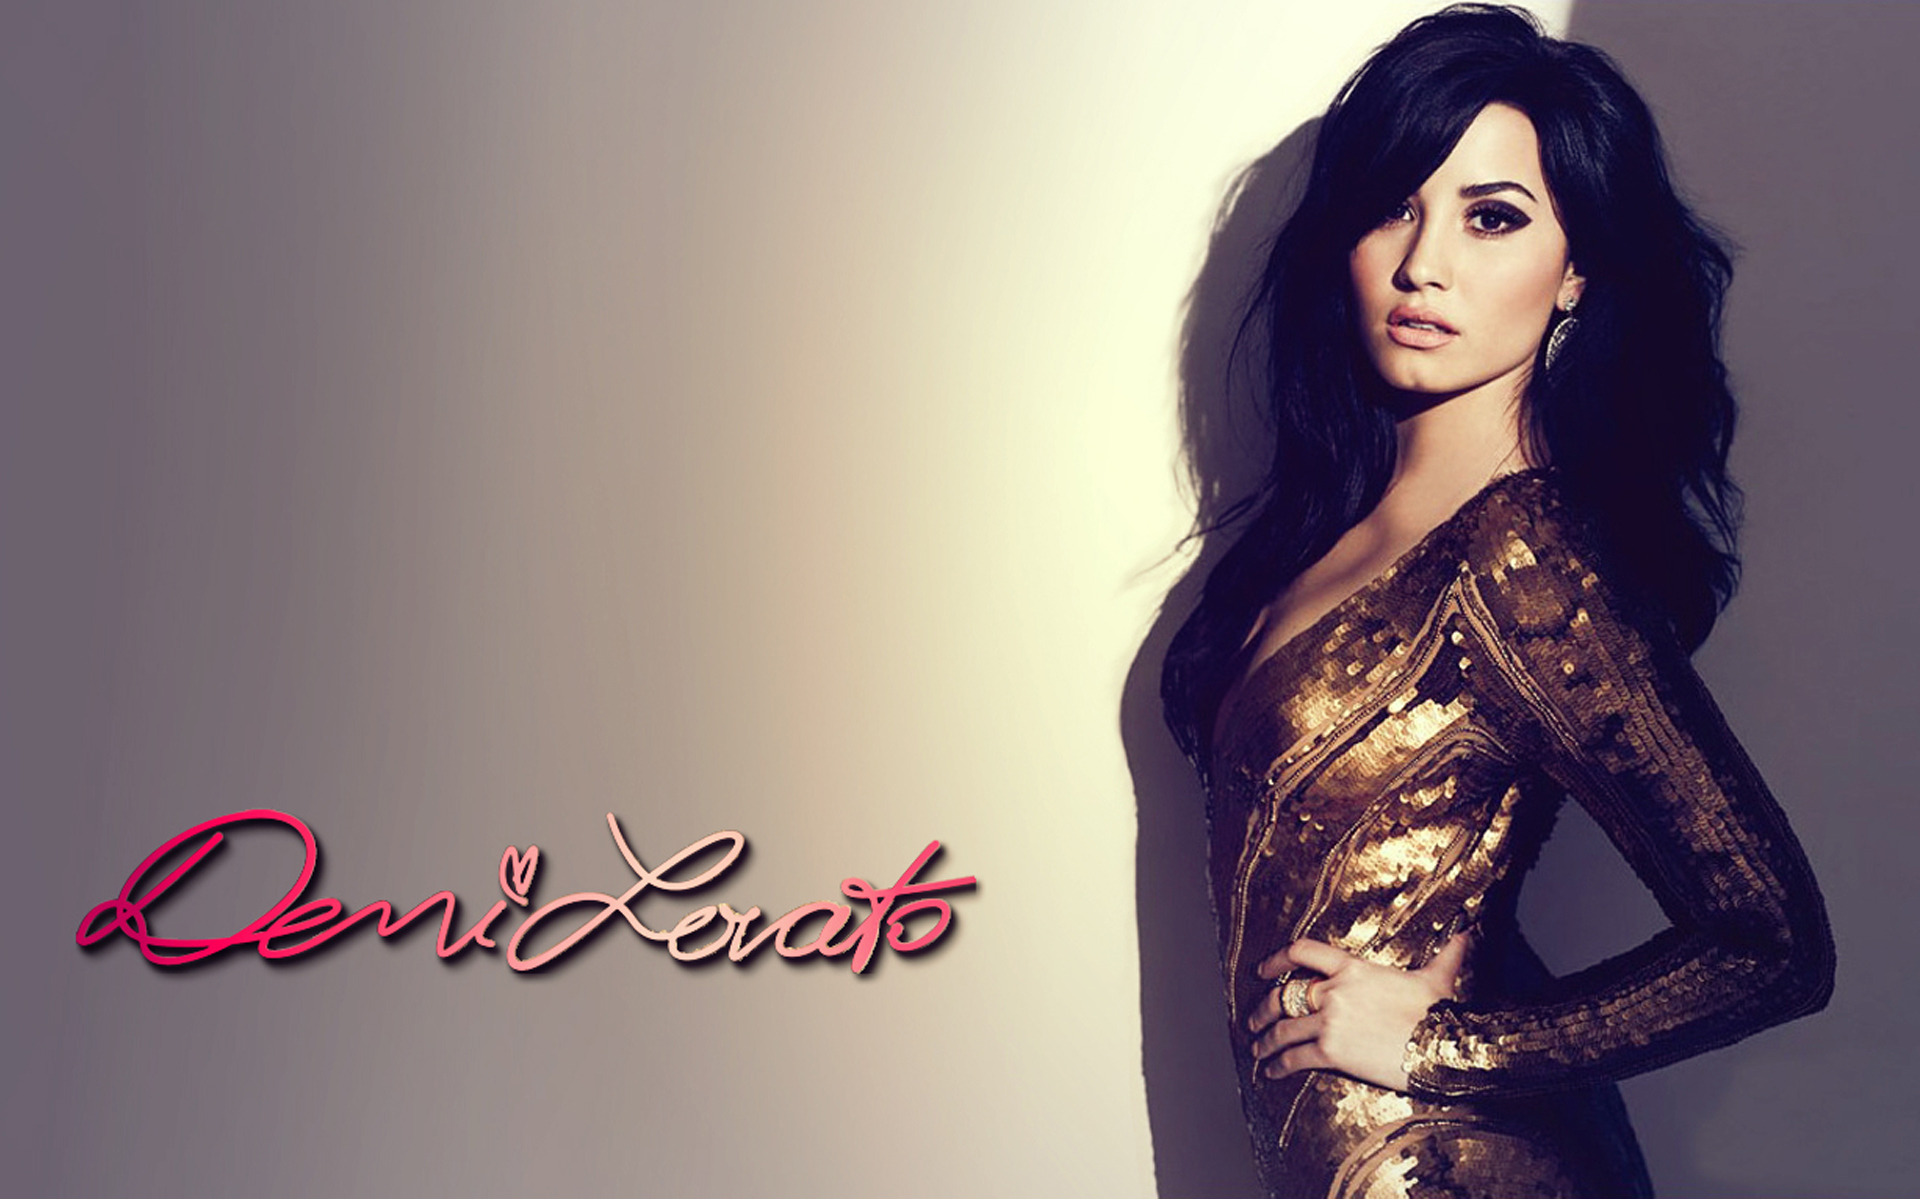 Download x wallpaper demi lovato hot and beautiful singer